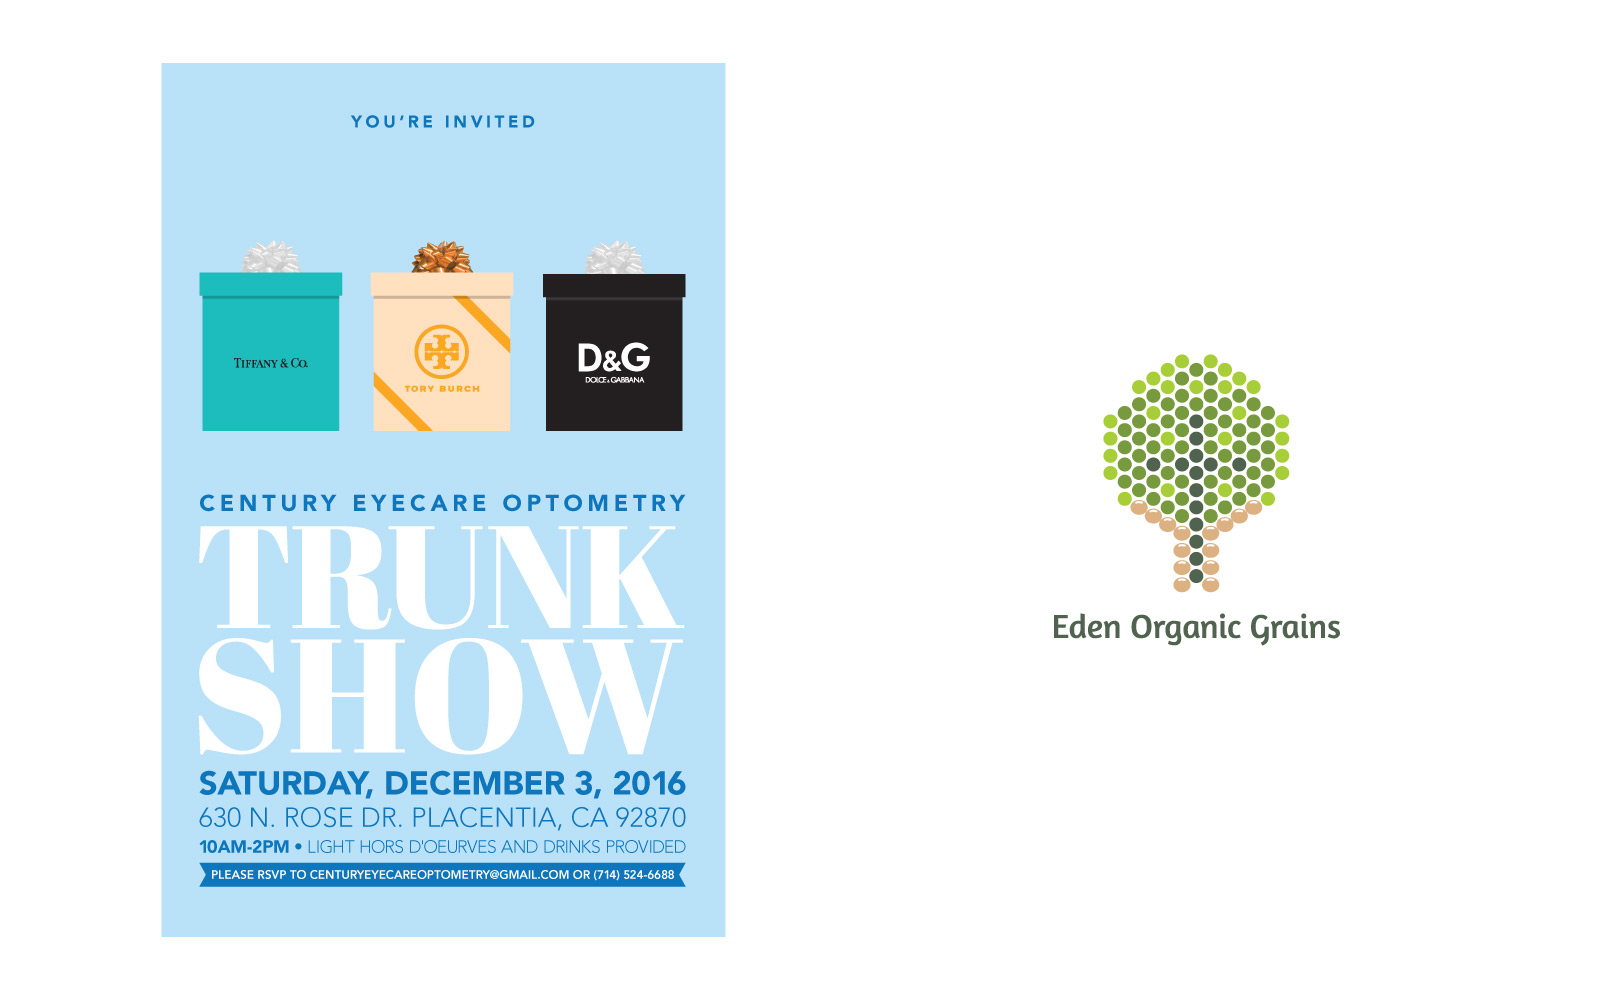 Trunk show card design and Logo design for Eden Organic Grains.